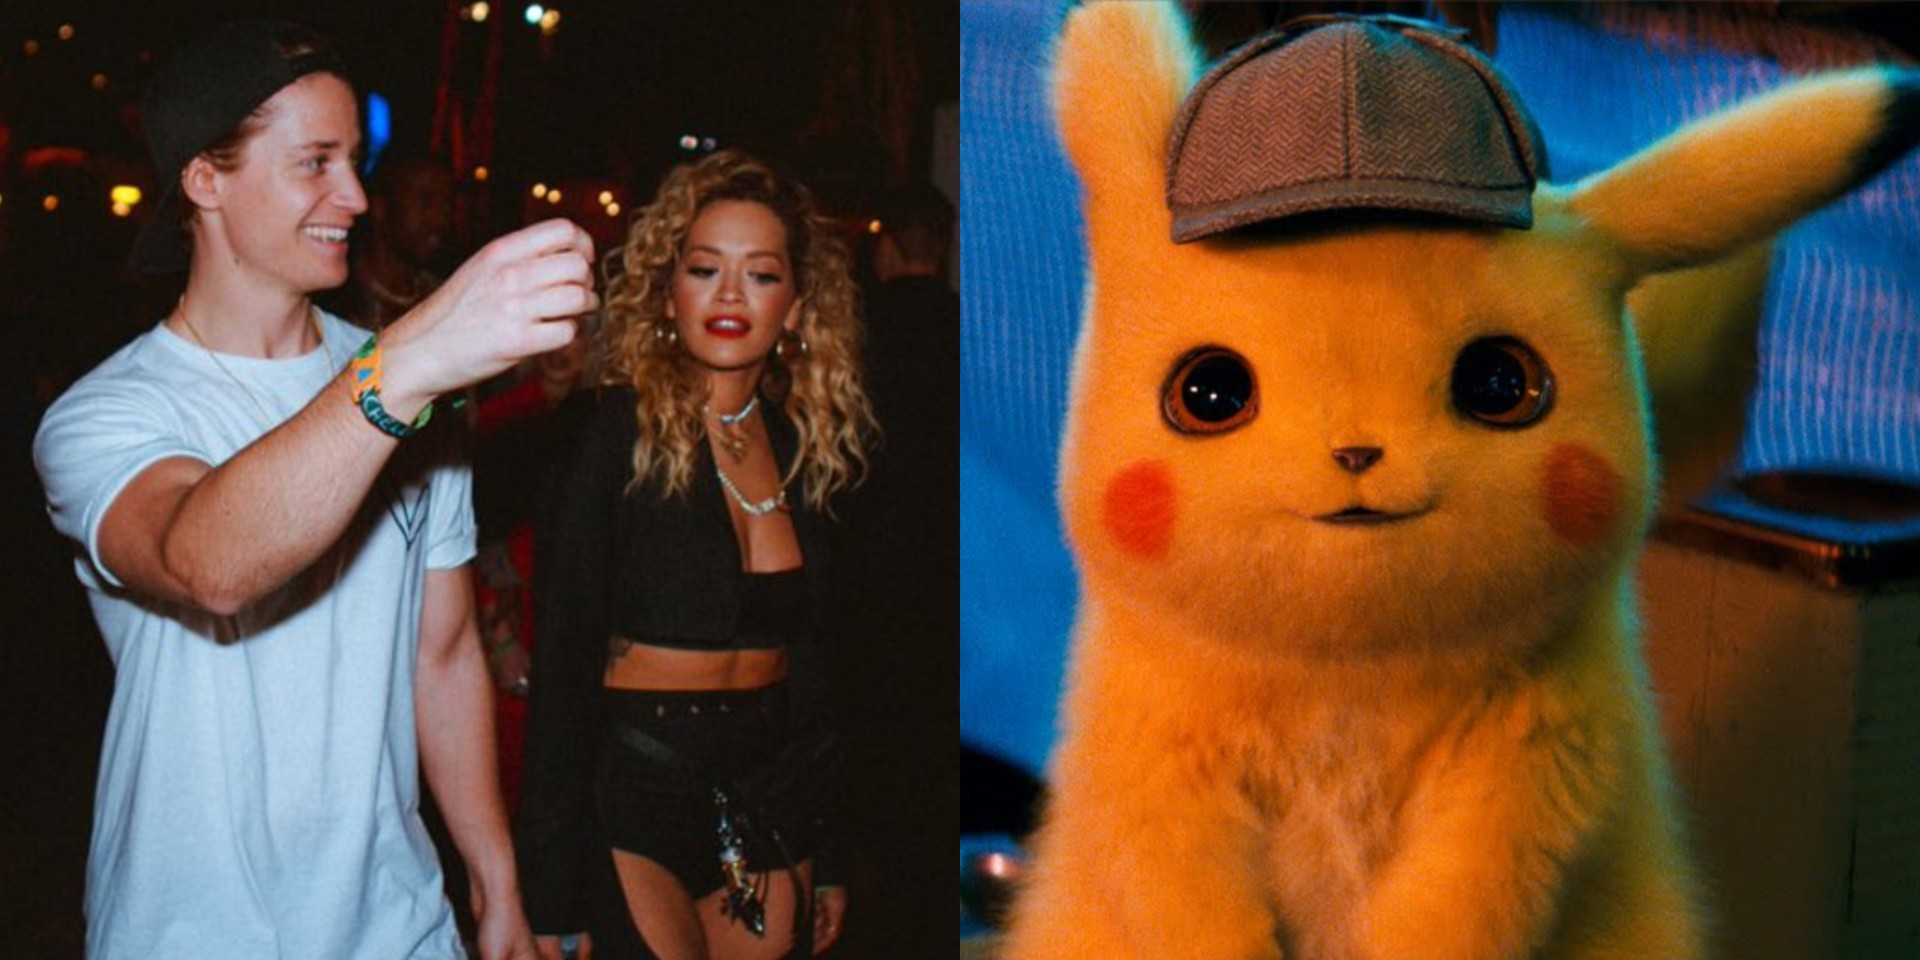 Rita Ora and Kygo collaborate for Detective Pikachu song, 'Carry On' – watch